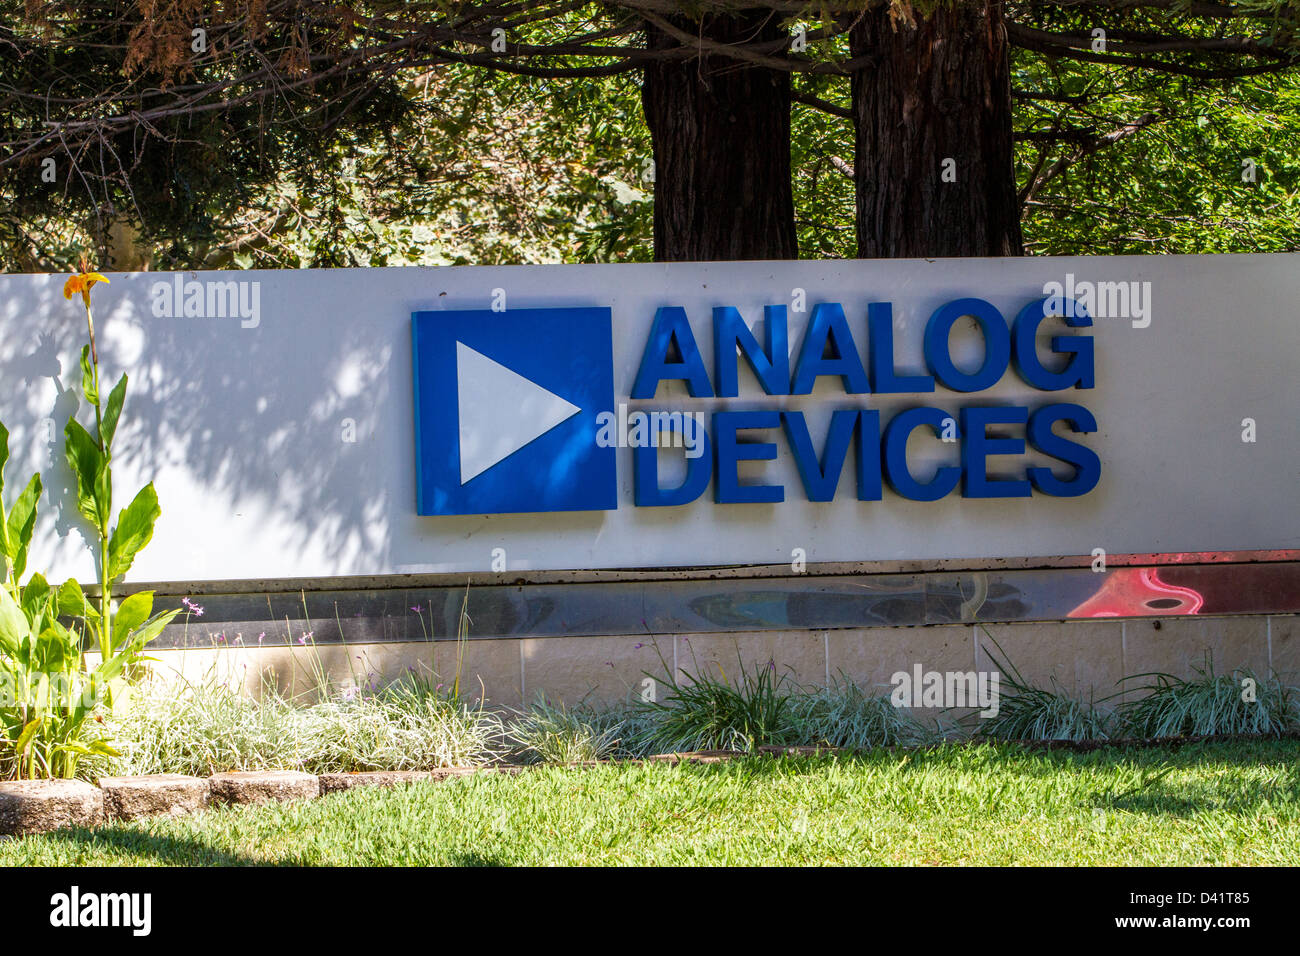 Analog Devices sign in the Silicon Valley of California - Stock Image